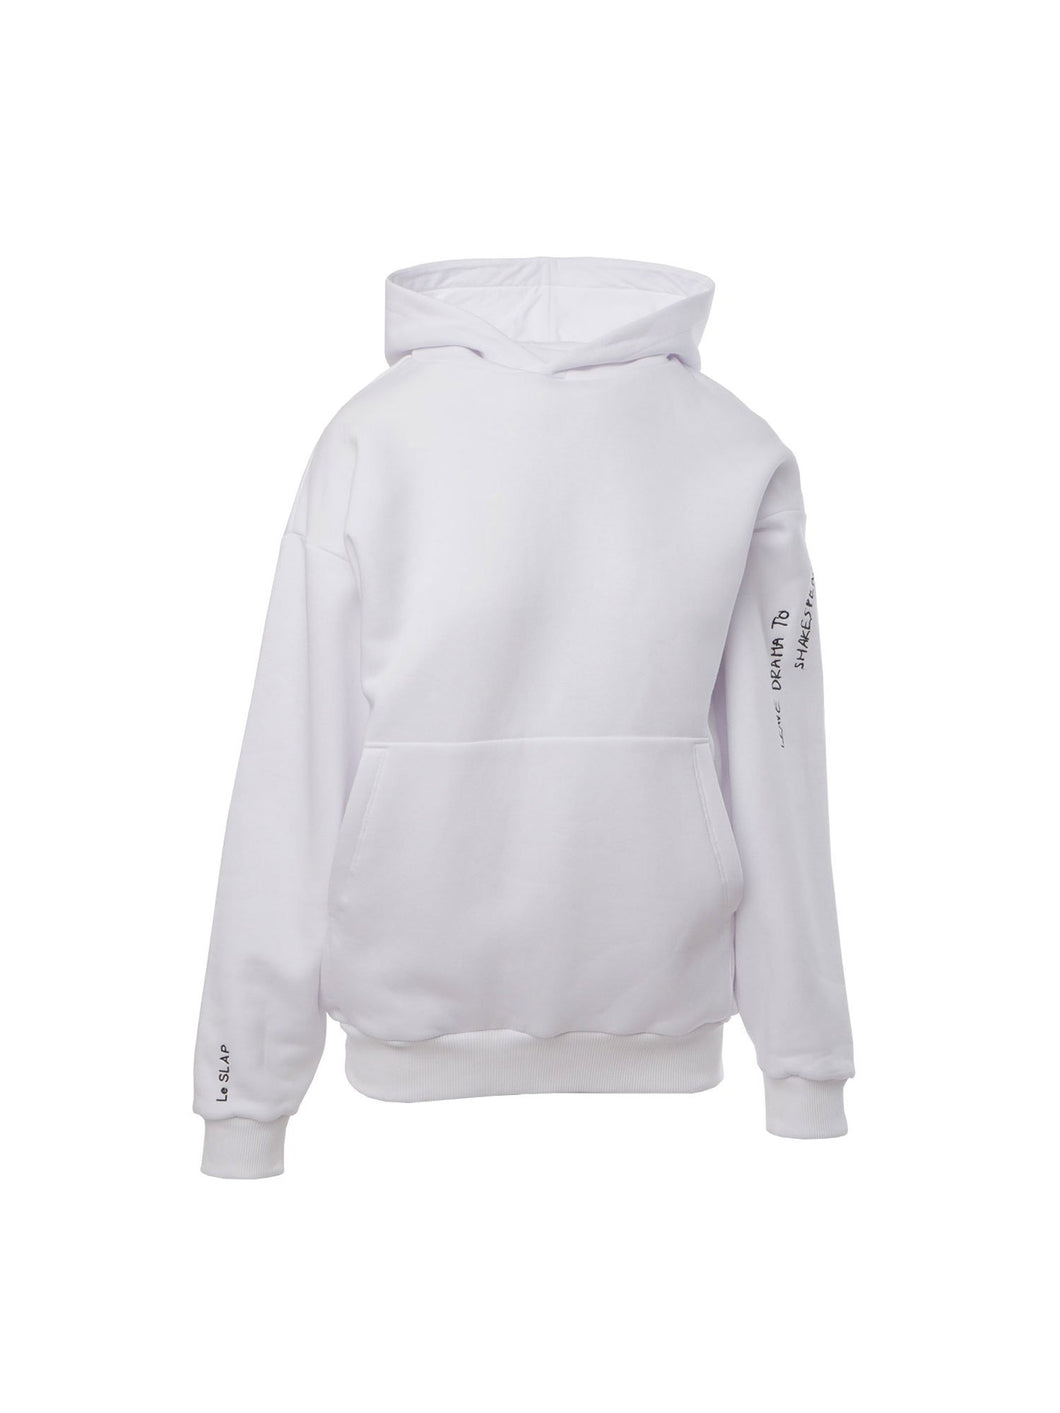 Shakespeare Oversize Hoodie in White